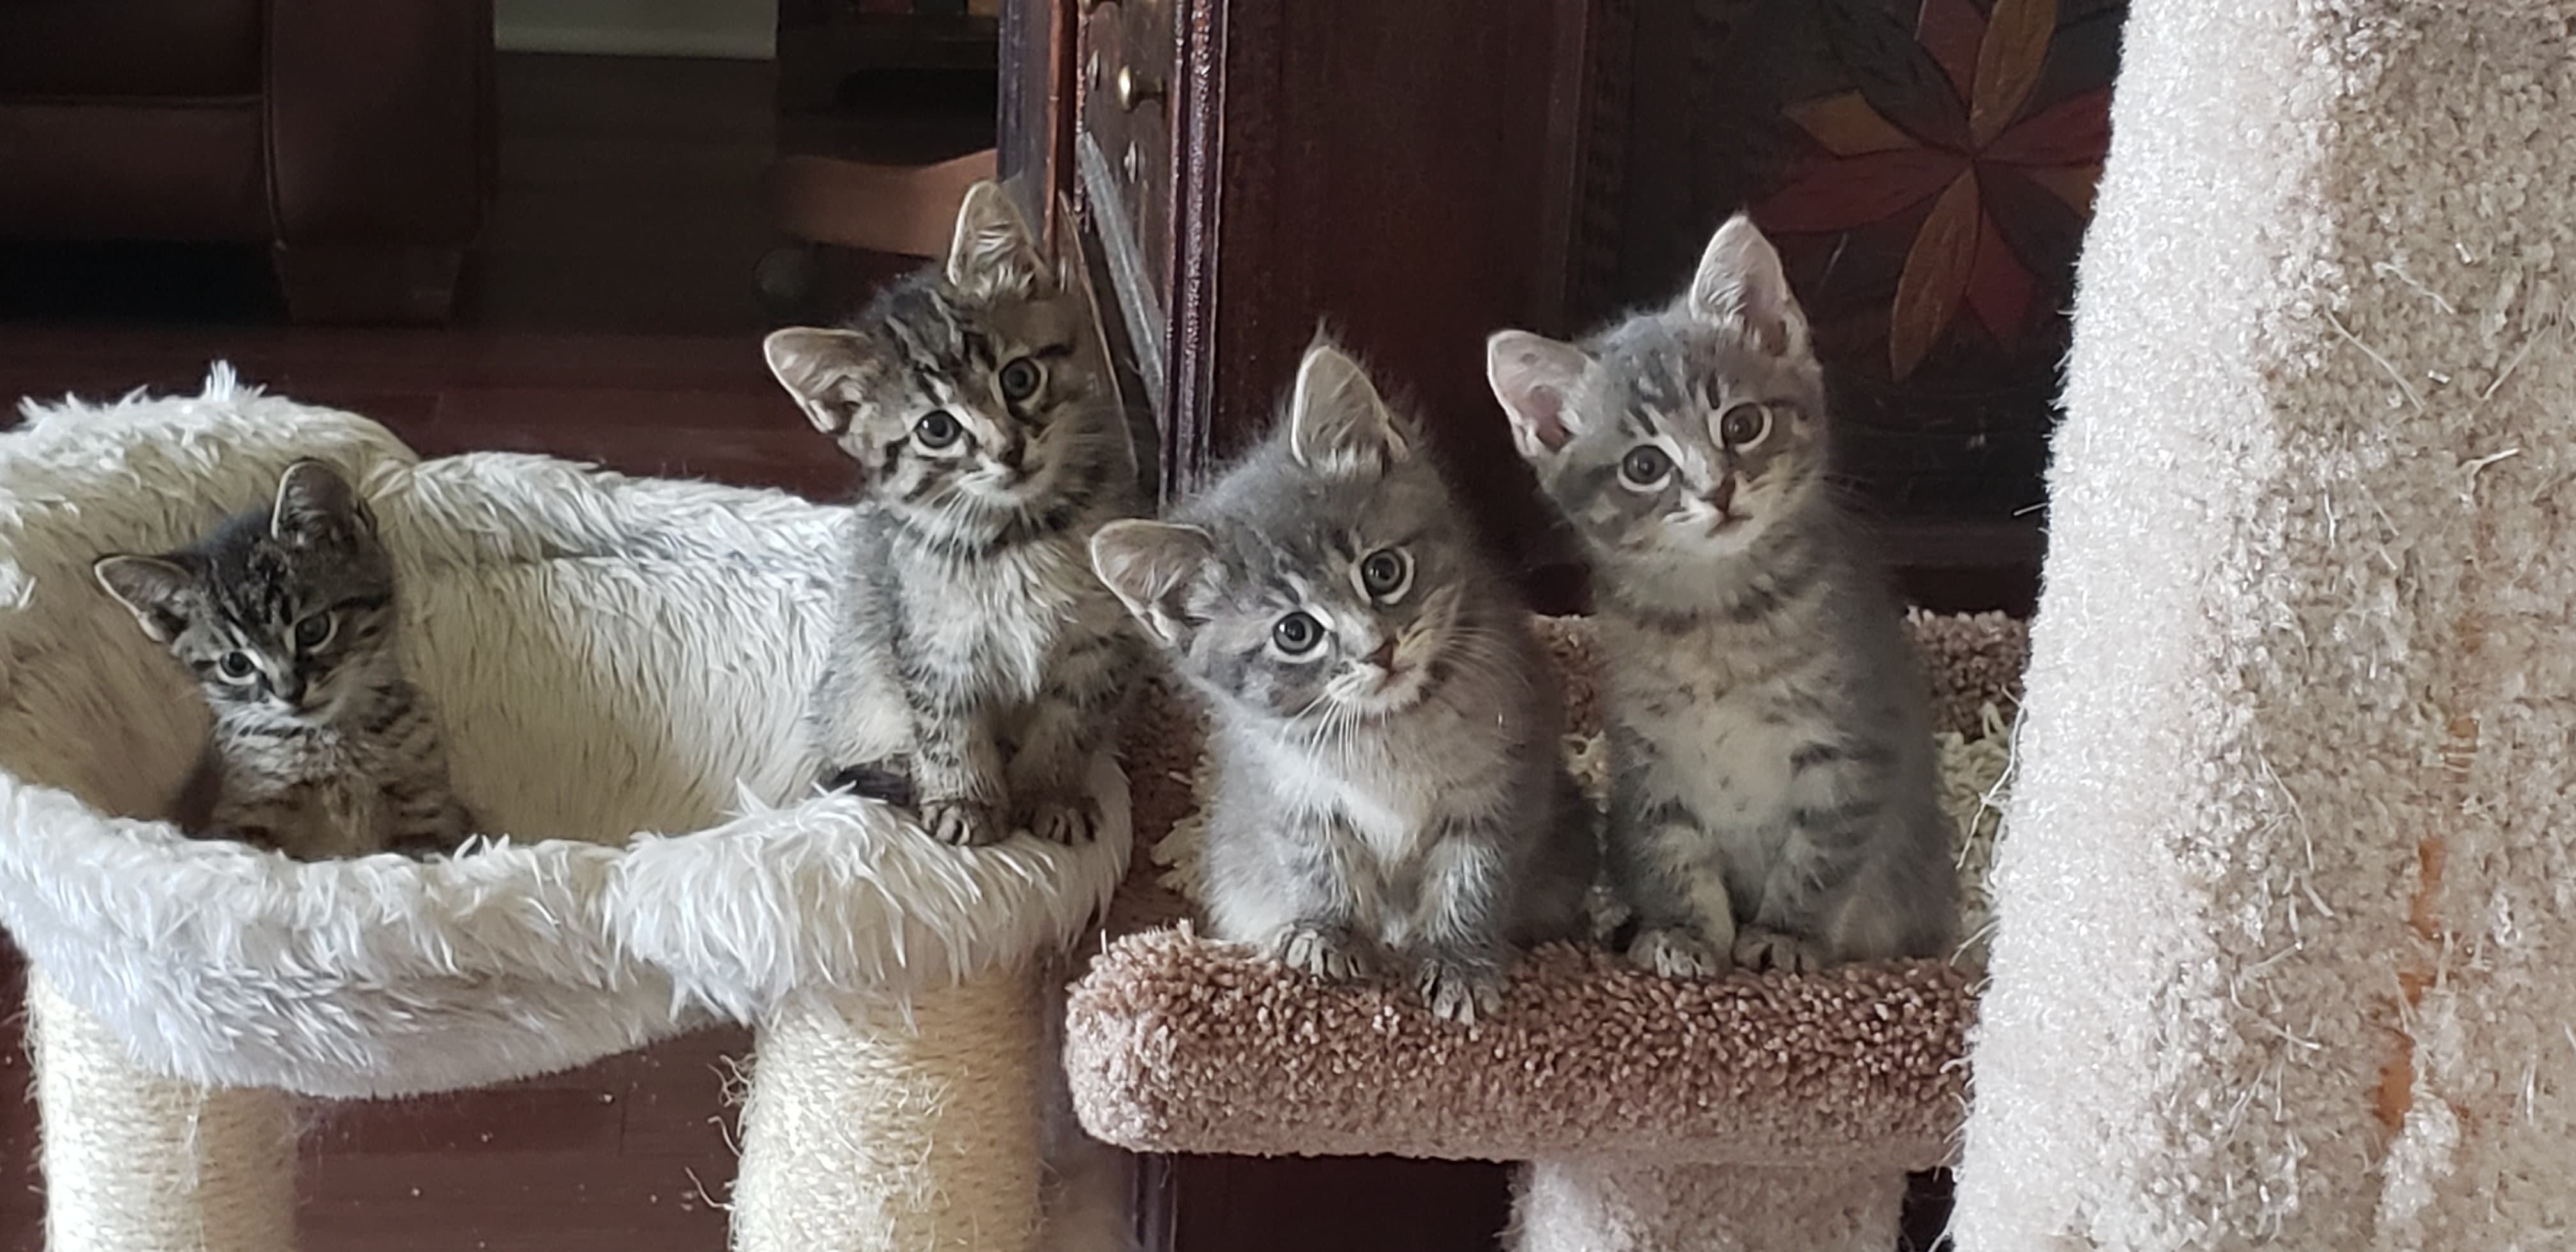 Four tiger-striped kittens looking cock-eyed at the camera.